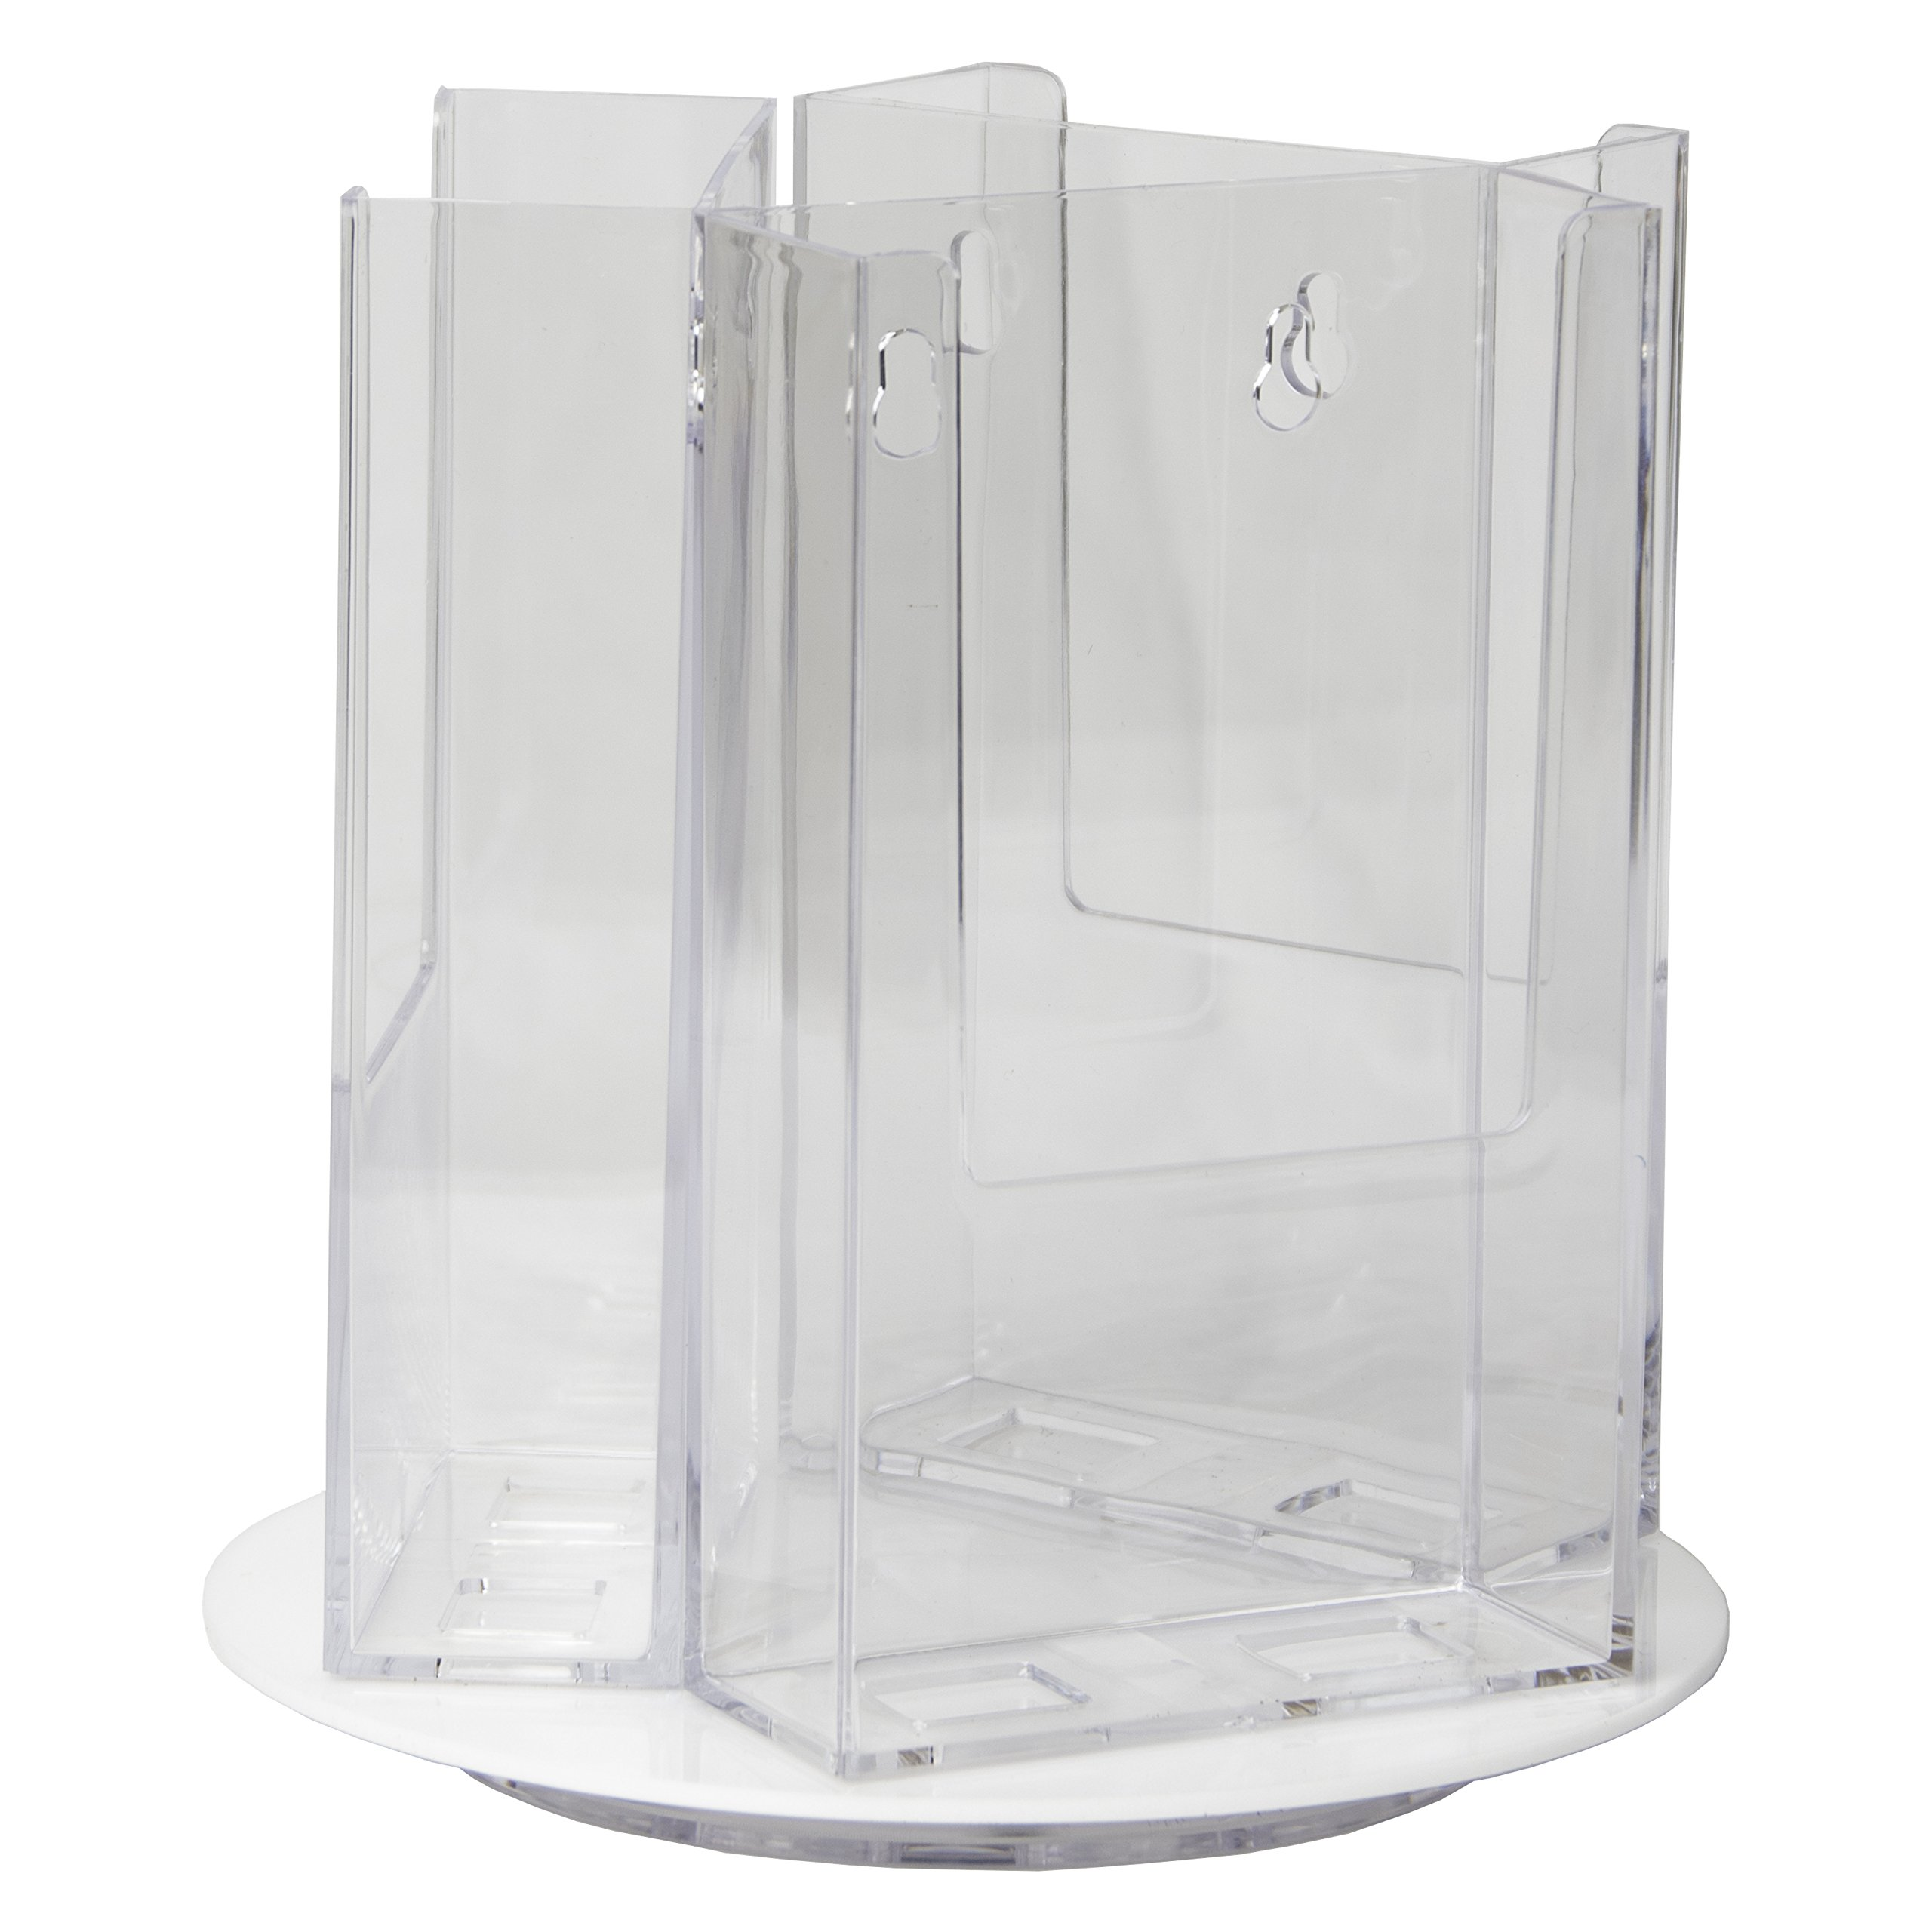 Clear-Ad - RLT-49-3 Acrylic Rotating Trifold Brochure Holders for 4'' Literature Display - Pamphlet Holder and Magazine Organizer